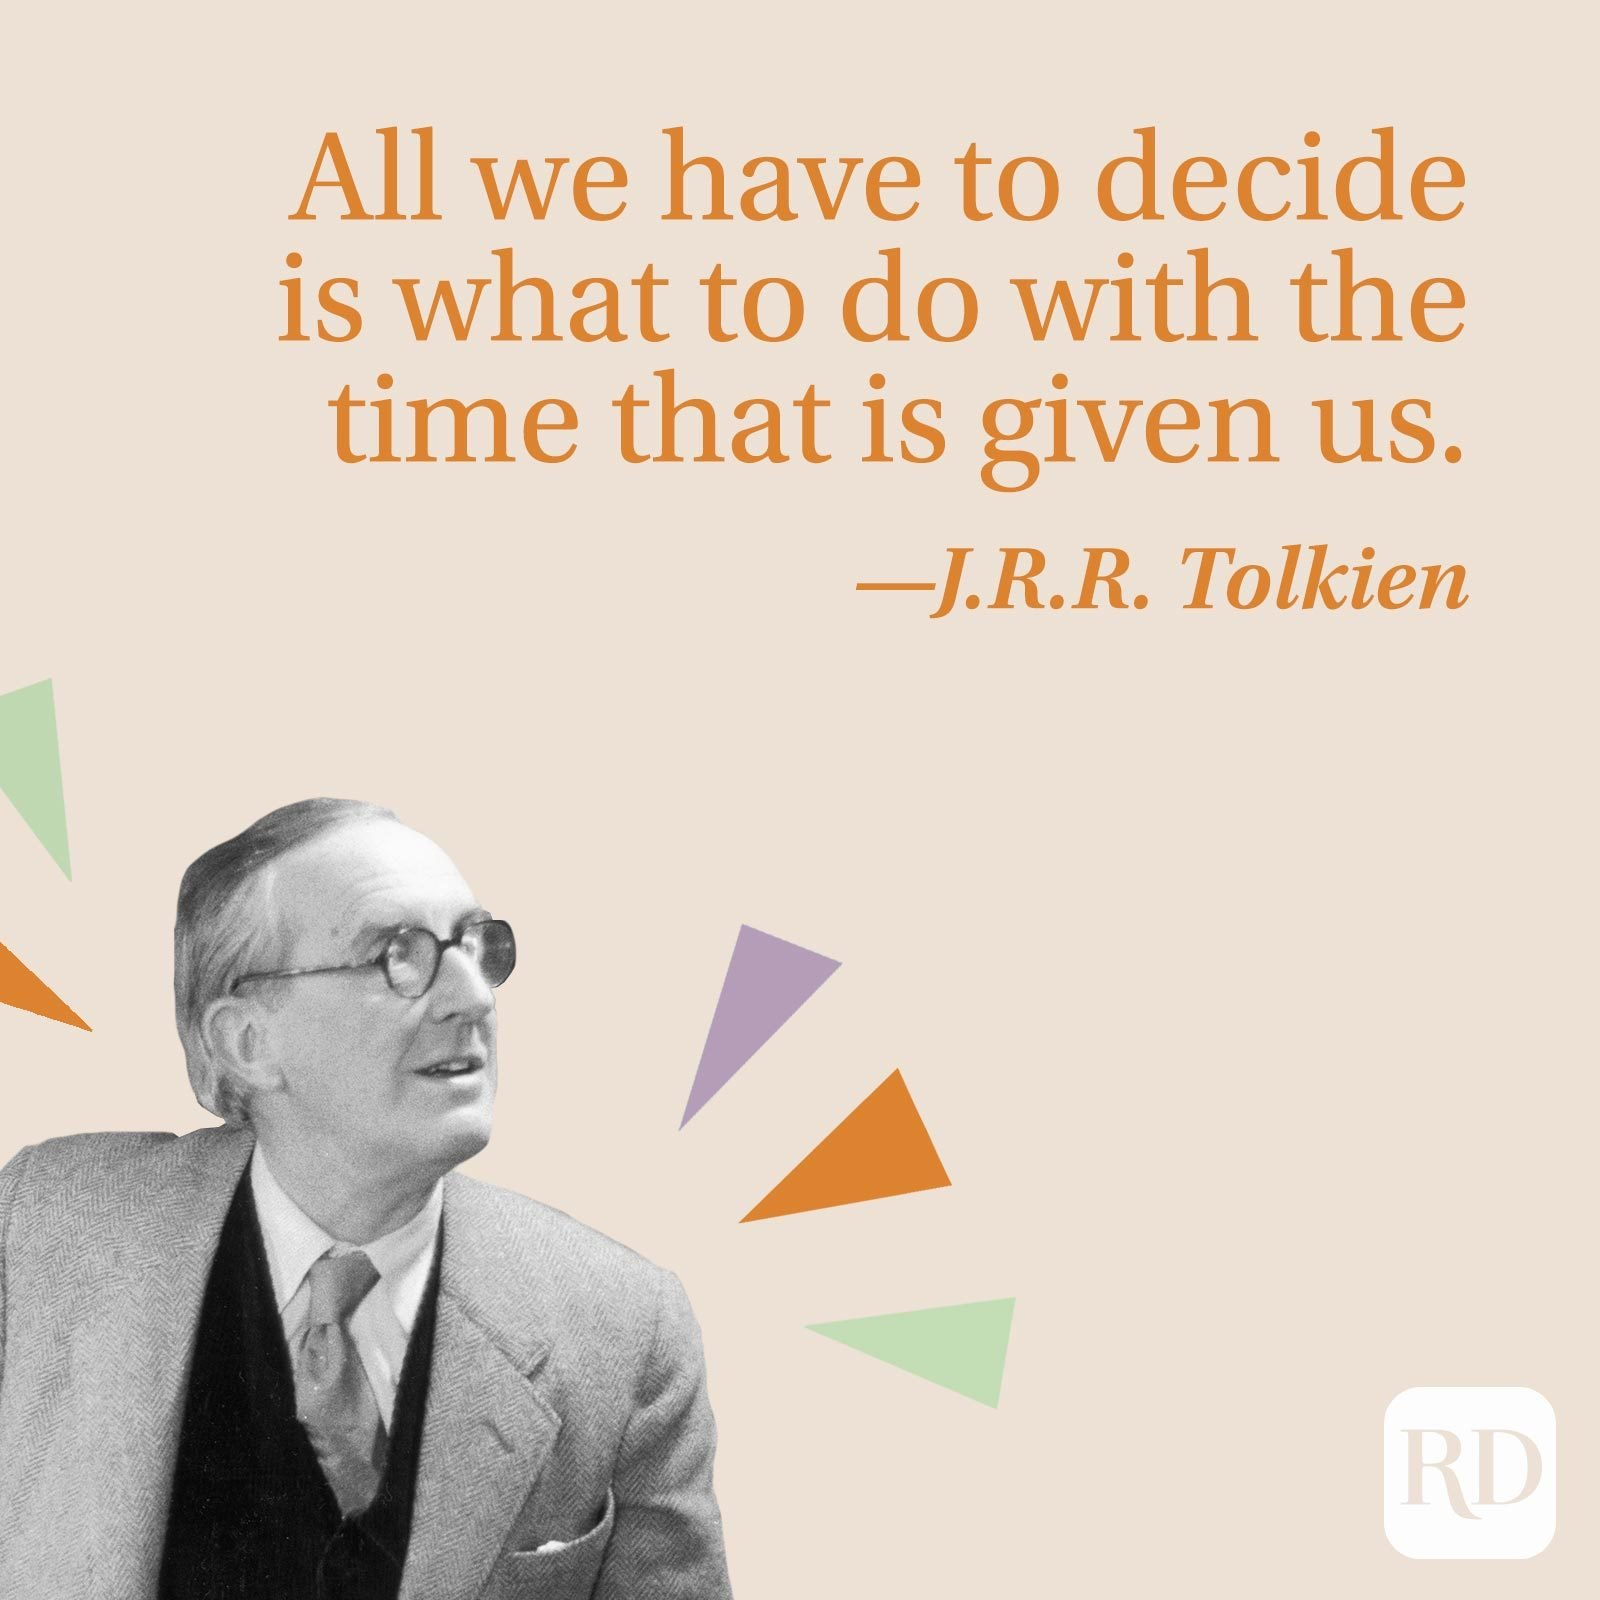 """""""All we have to decide is what to do with the time that is given us."""" —J.R.R. Tolkien"""